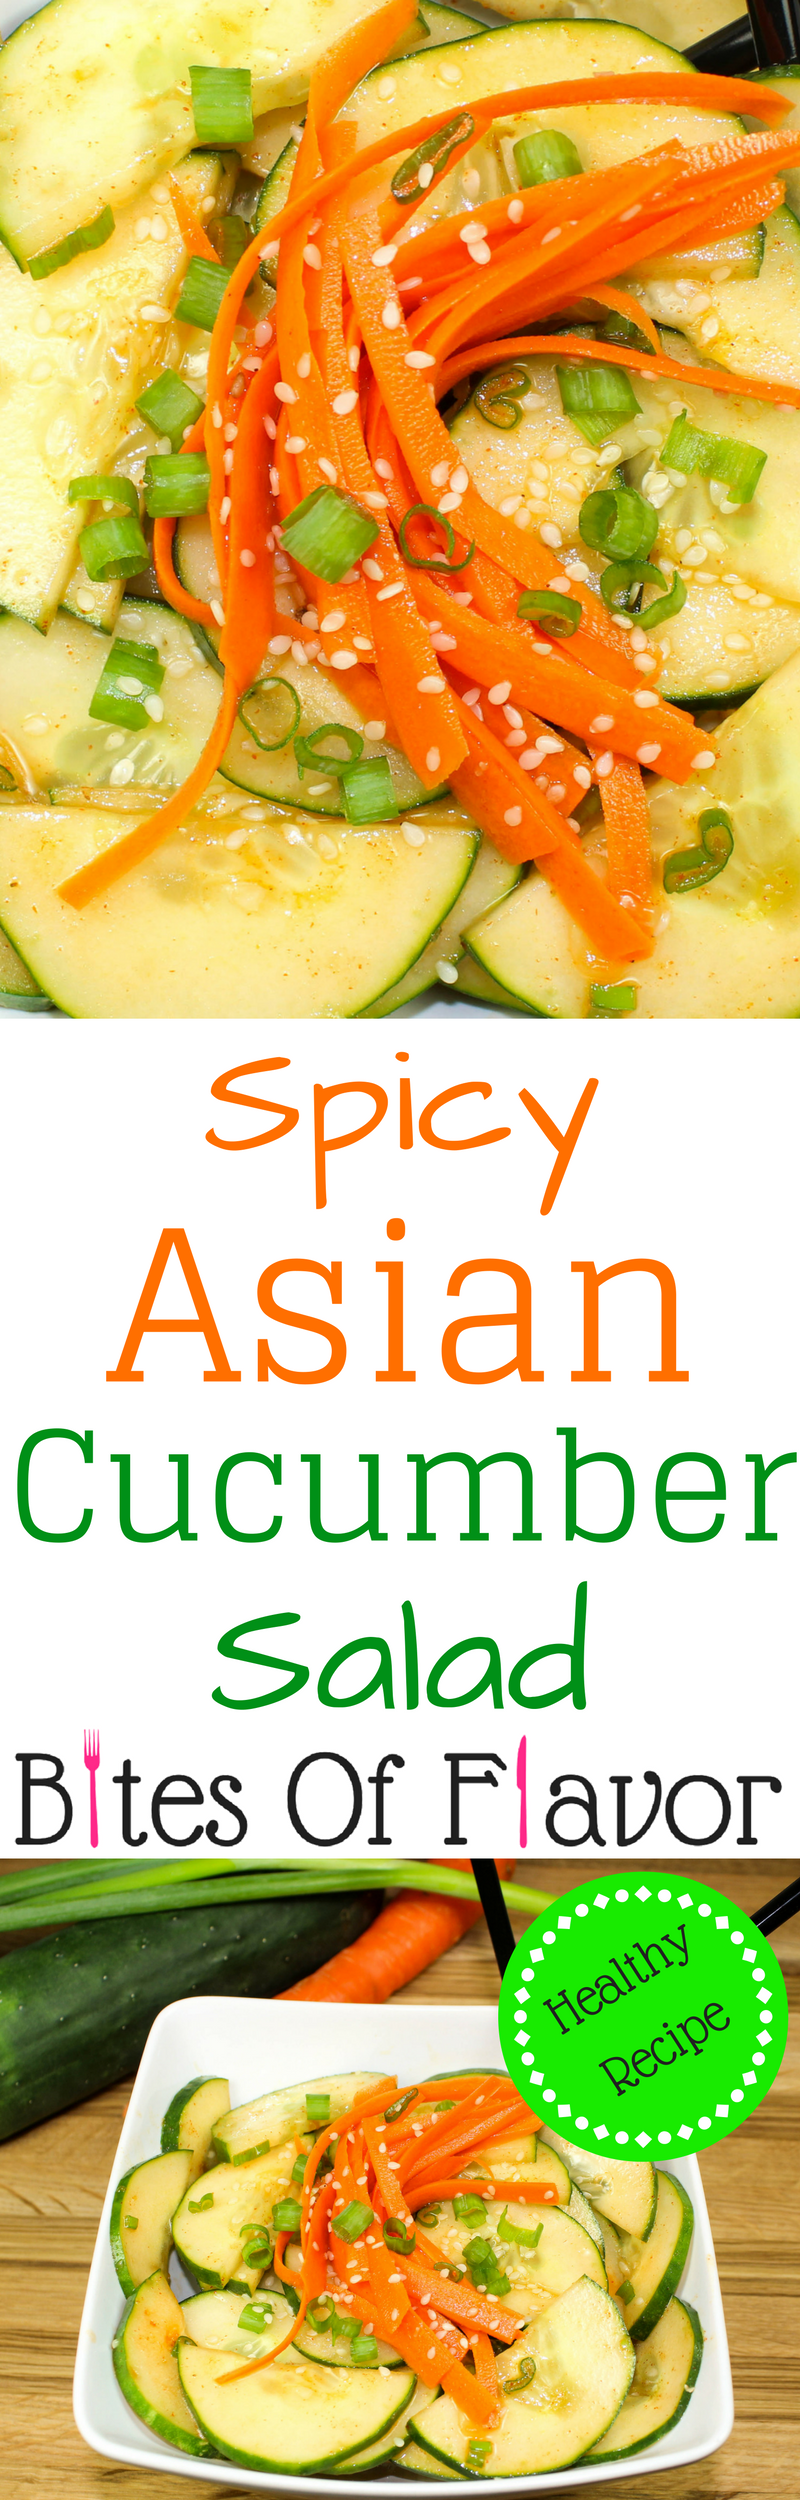 Spicy Asian Cucumber Salad is a great side dish or appetizer for any Asian inspired meal. Crisp cucumbers and carrots tossed in a spicy & sweet dressing. Low fat and low calorie. Weight Watchers friendly recipe! www.bitesofflavor.com